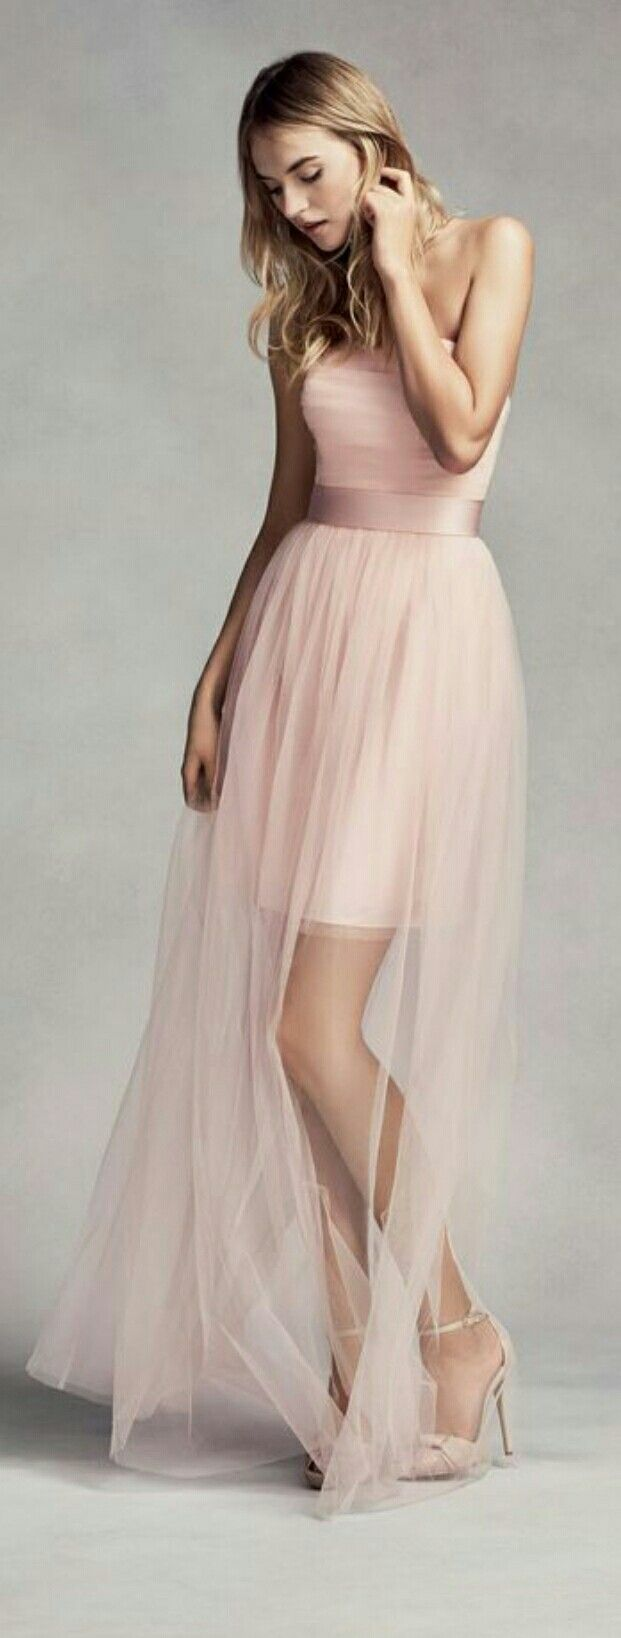 Pin by ansie de wet on all things pink and pinky shades pinterest style and color tulle short bridesmaid dress with illusion overskirt blush pink 12 ombrellifo Choice Image